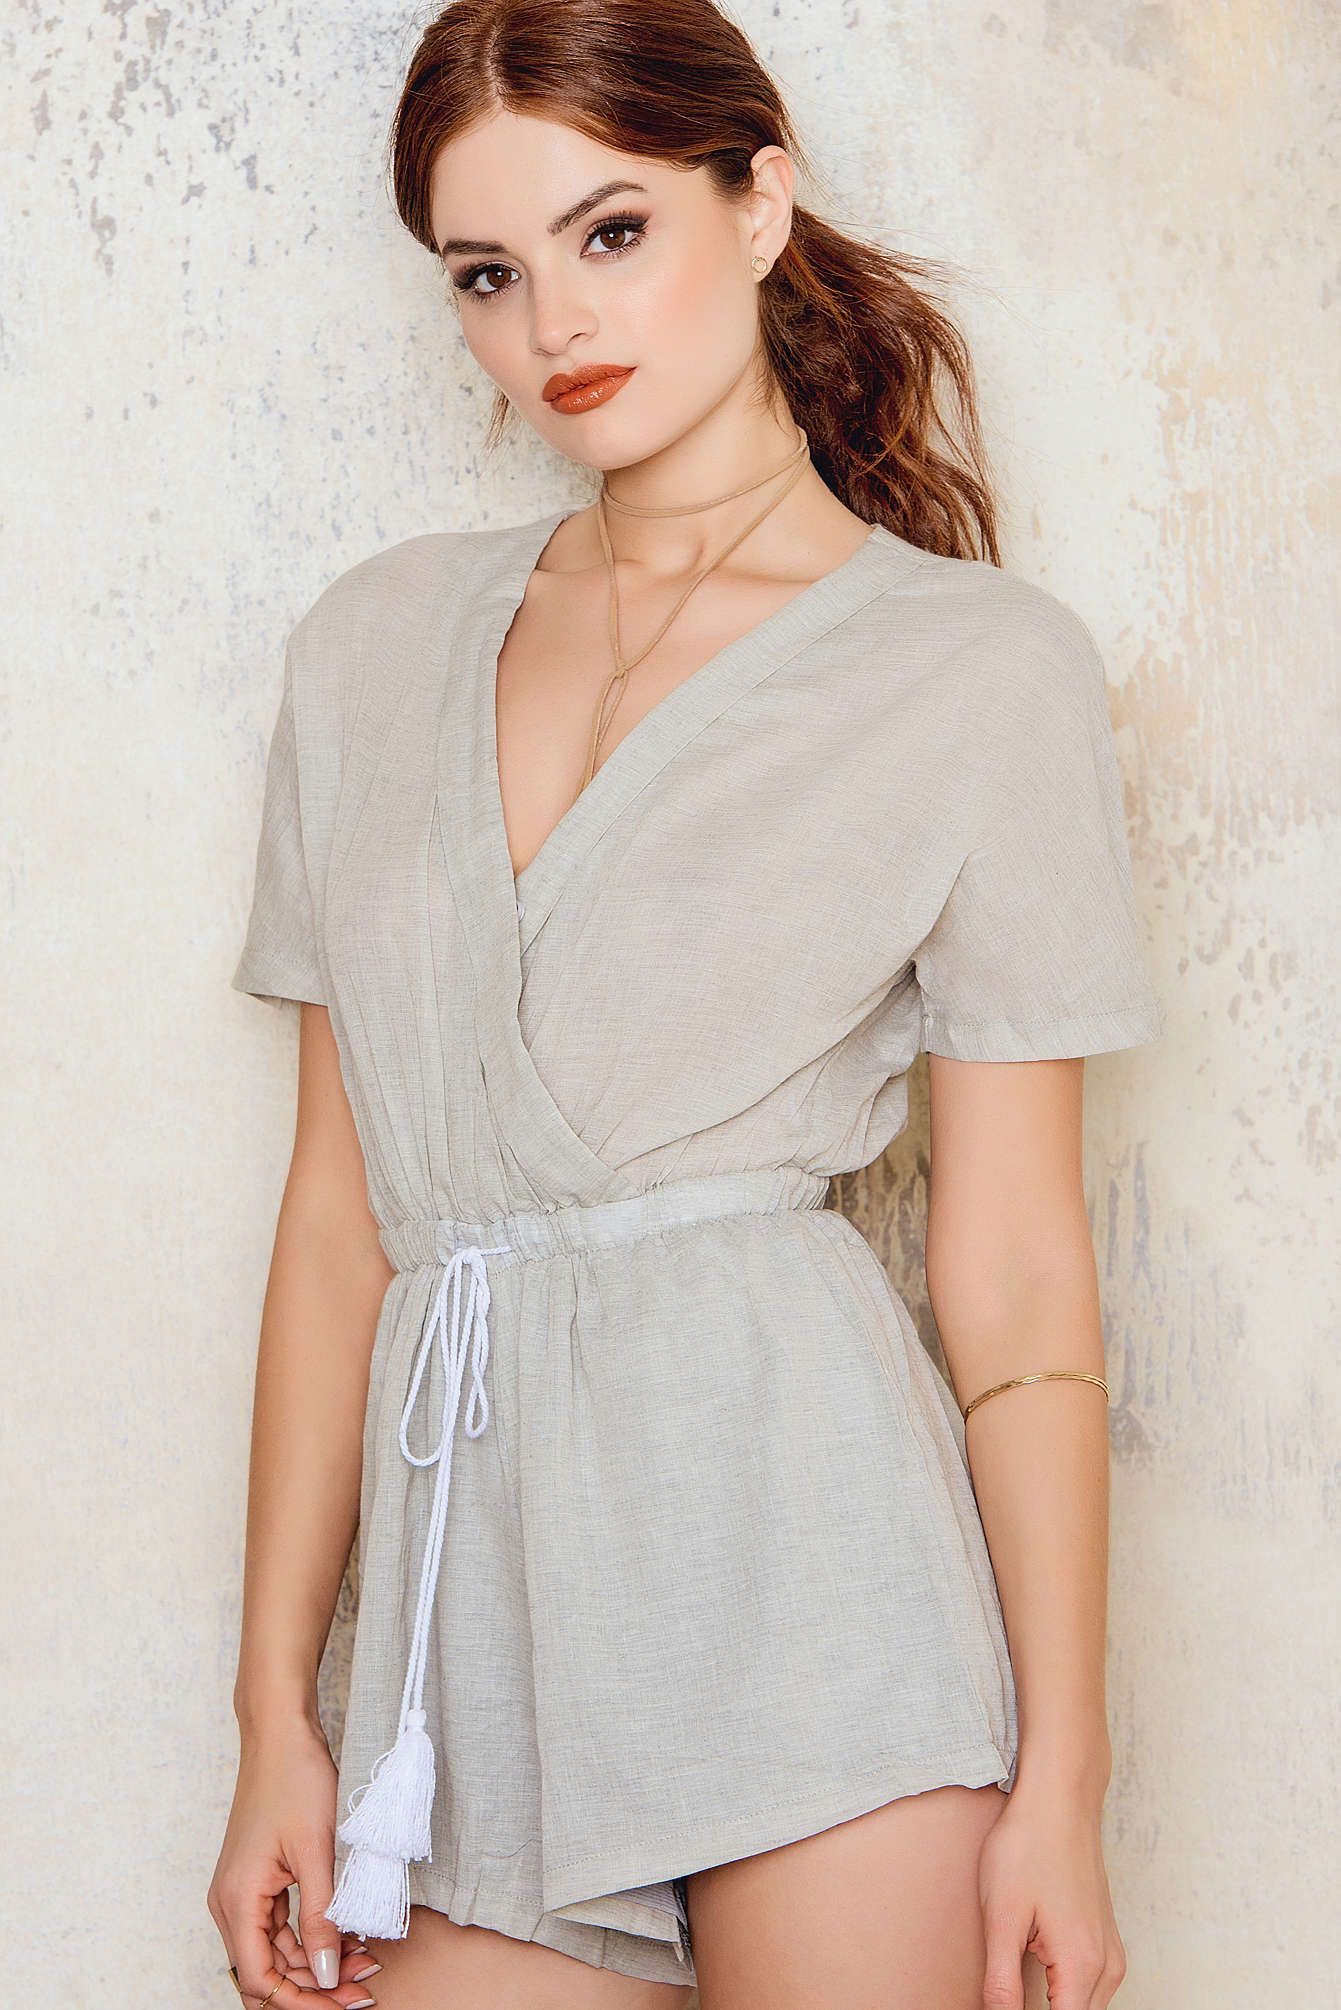 6c65124542 This playsuit is a true eye-catcher! The Linen Billow Front Playsuit by Toby  Heart Ginger comes in light grey and features a wrap-around v-neck…